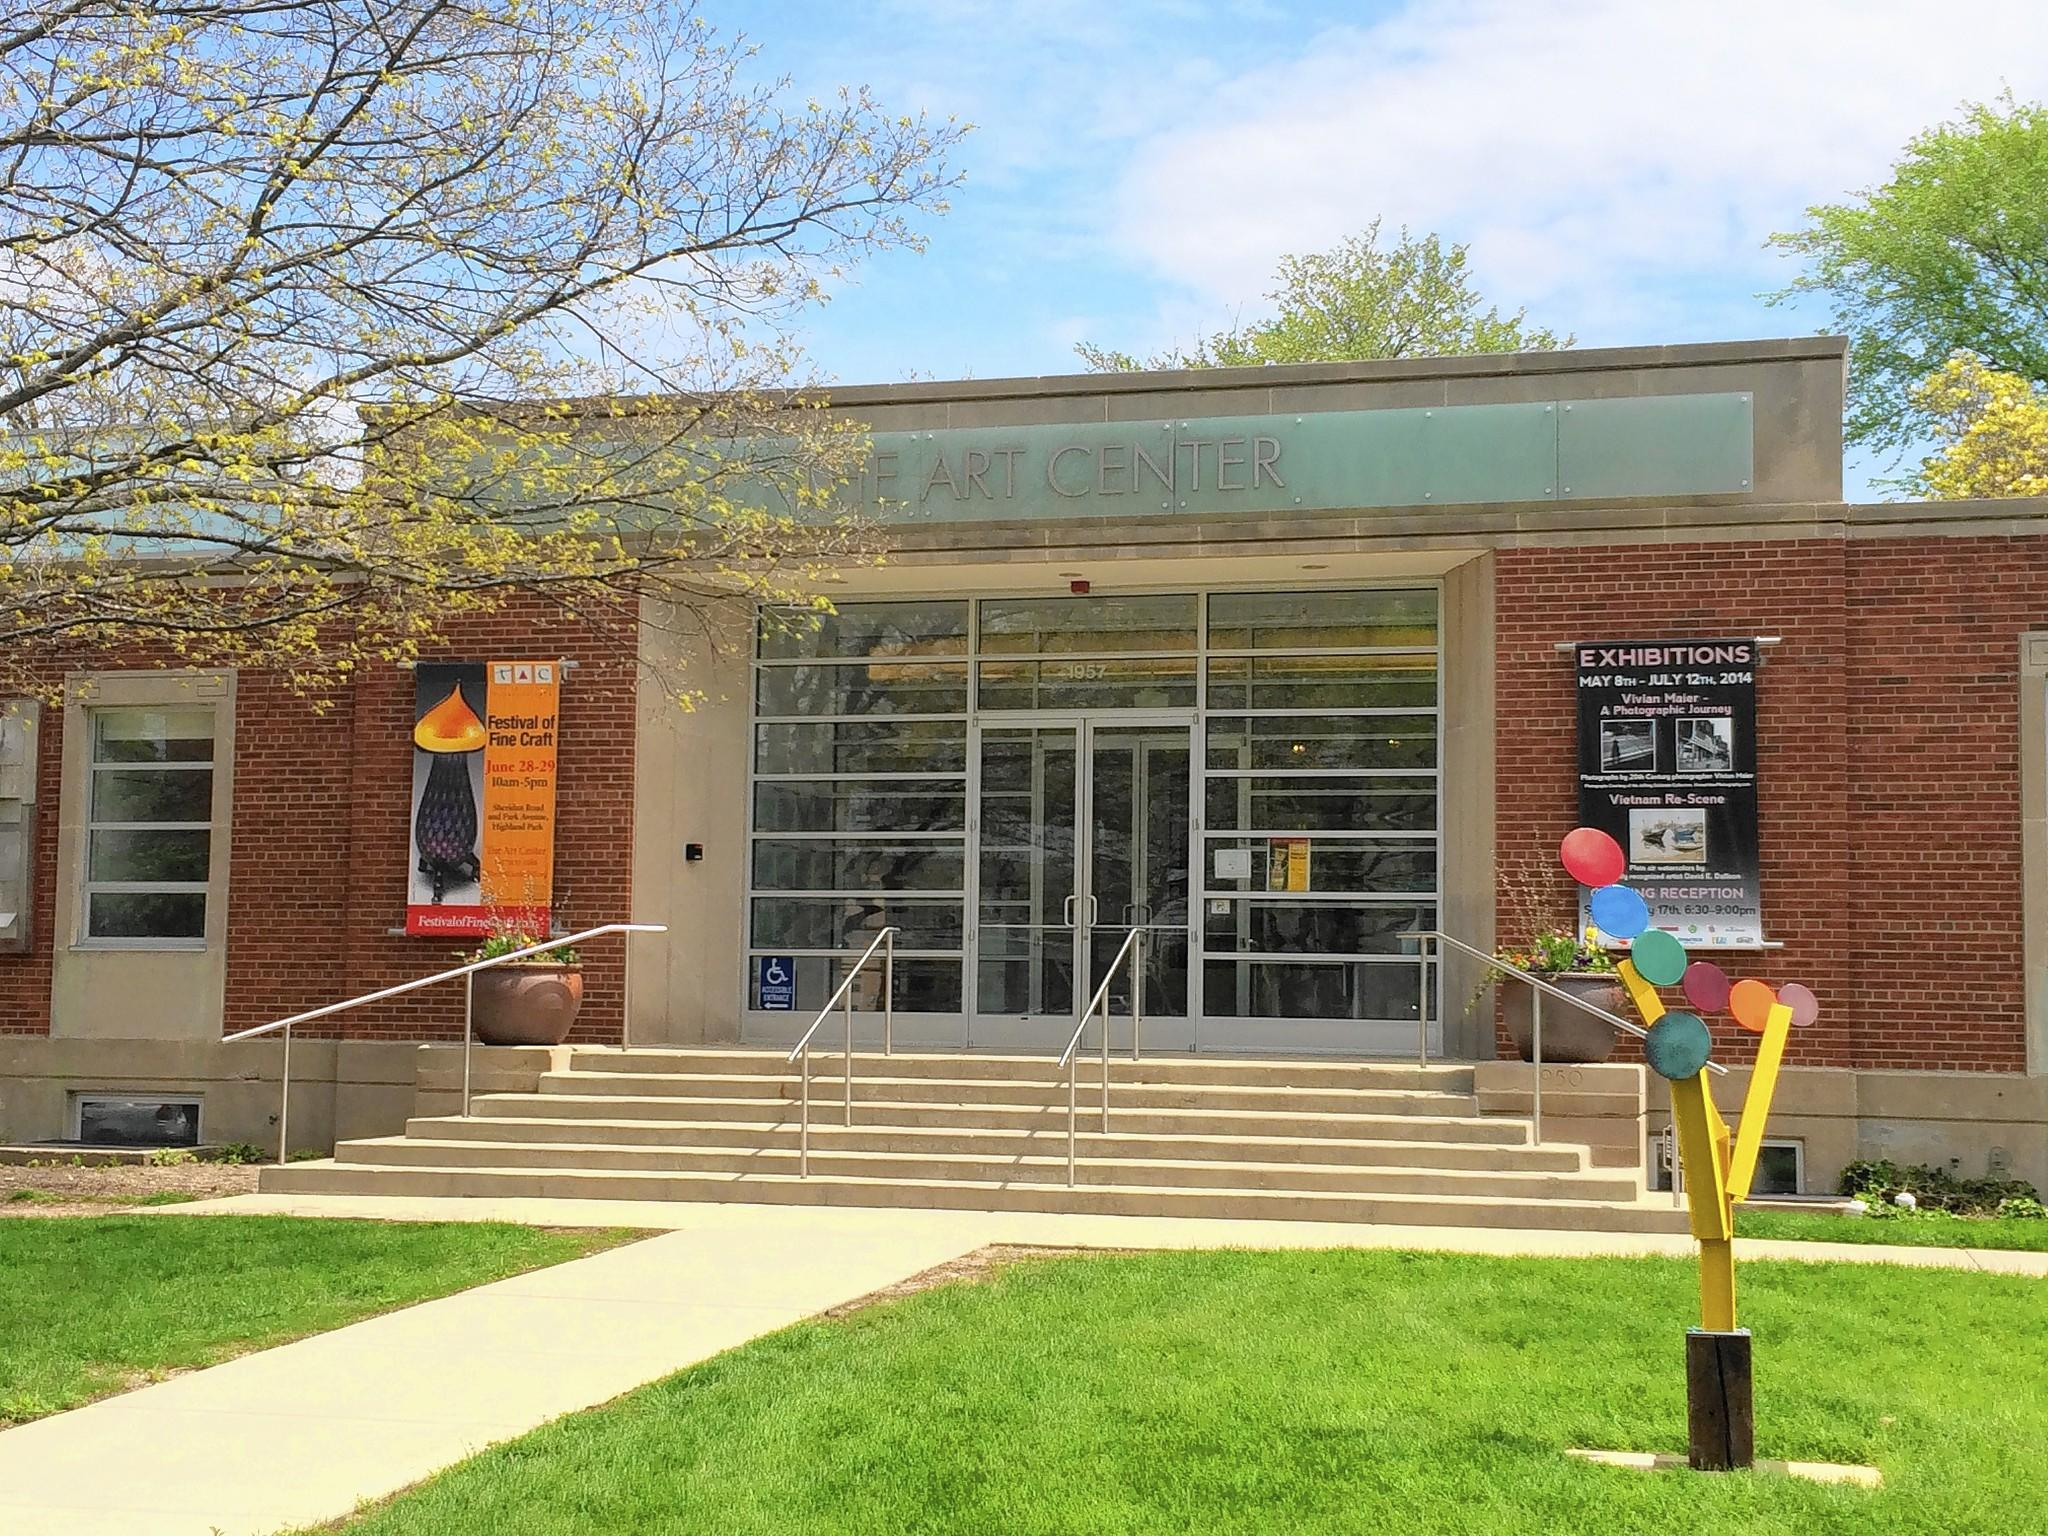 The Art Center Highland Park Located At 1957 Sheridan Road Has Found More